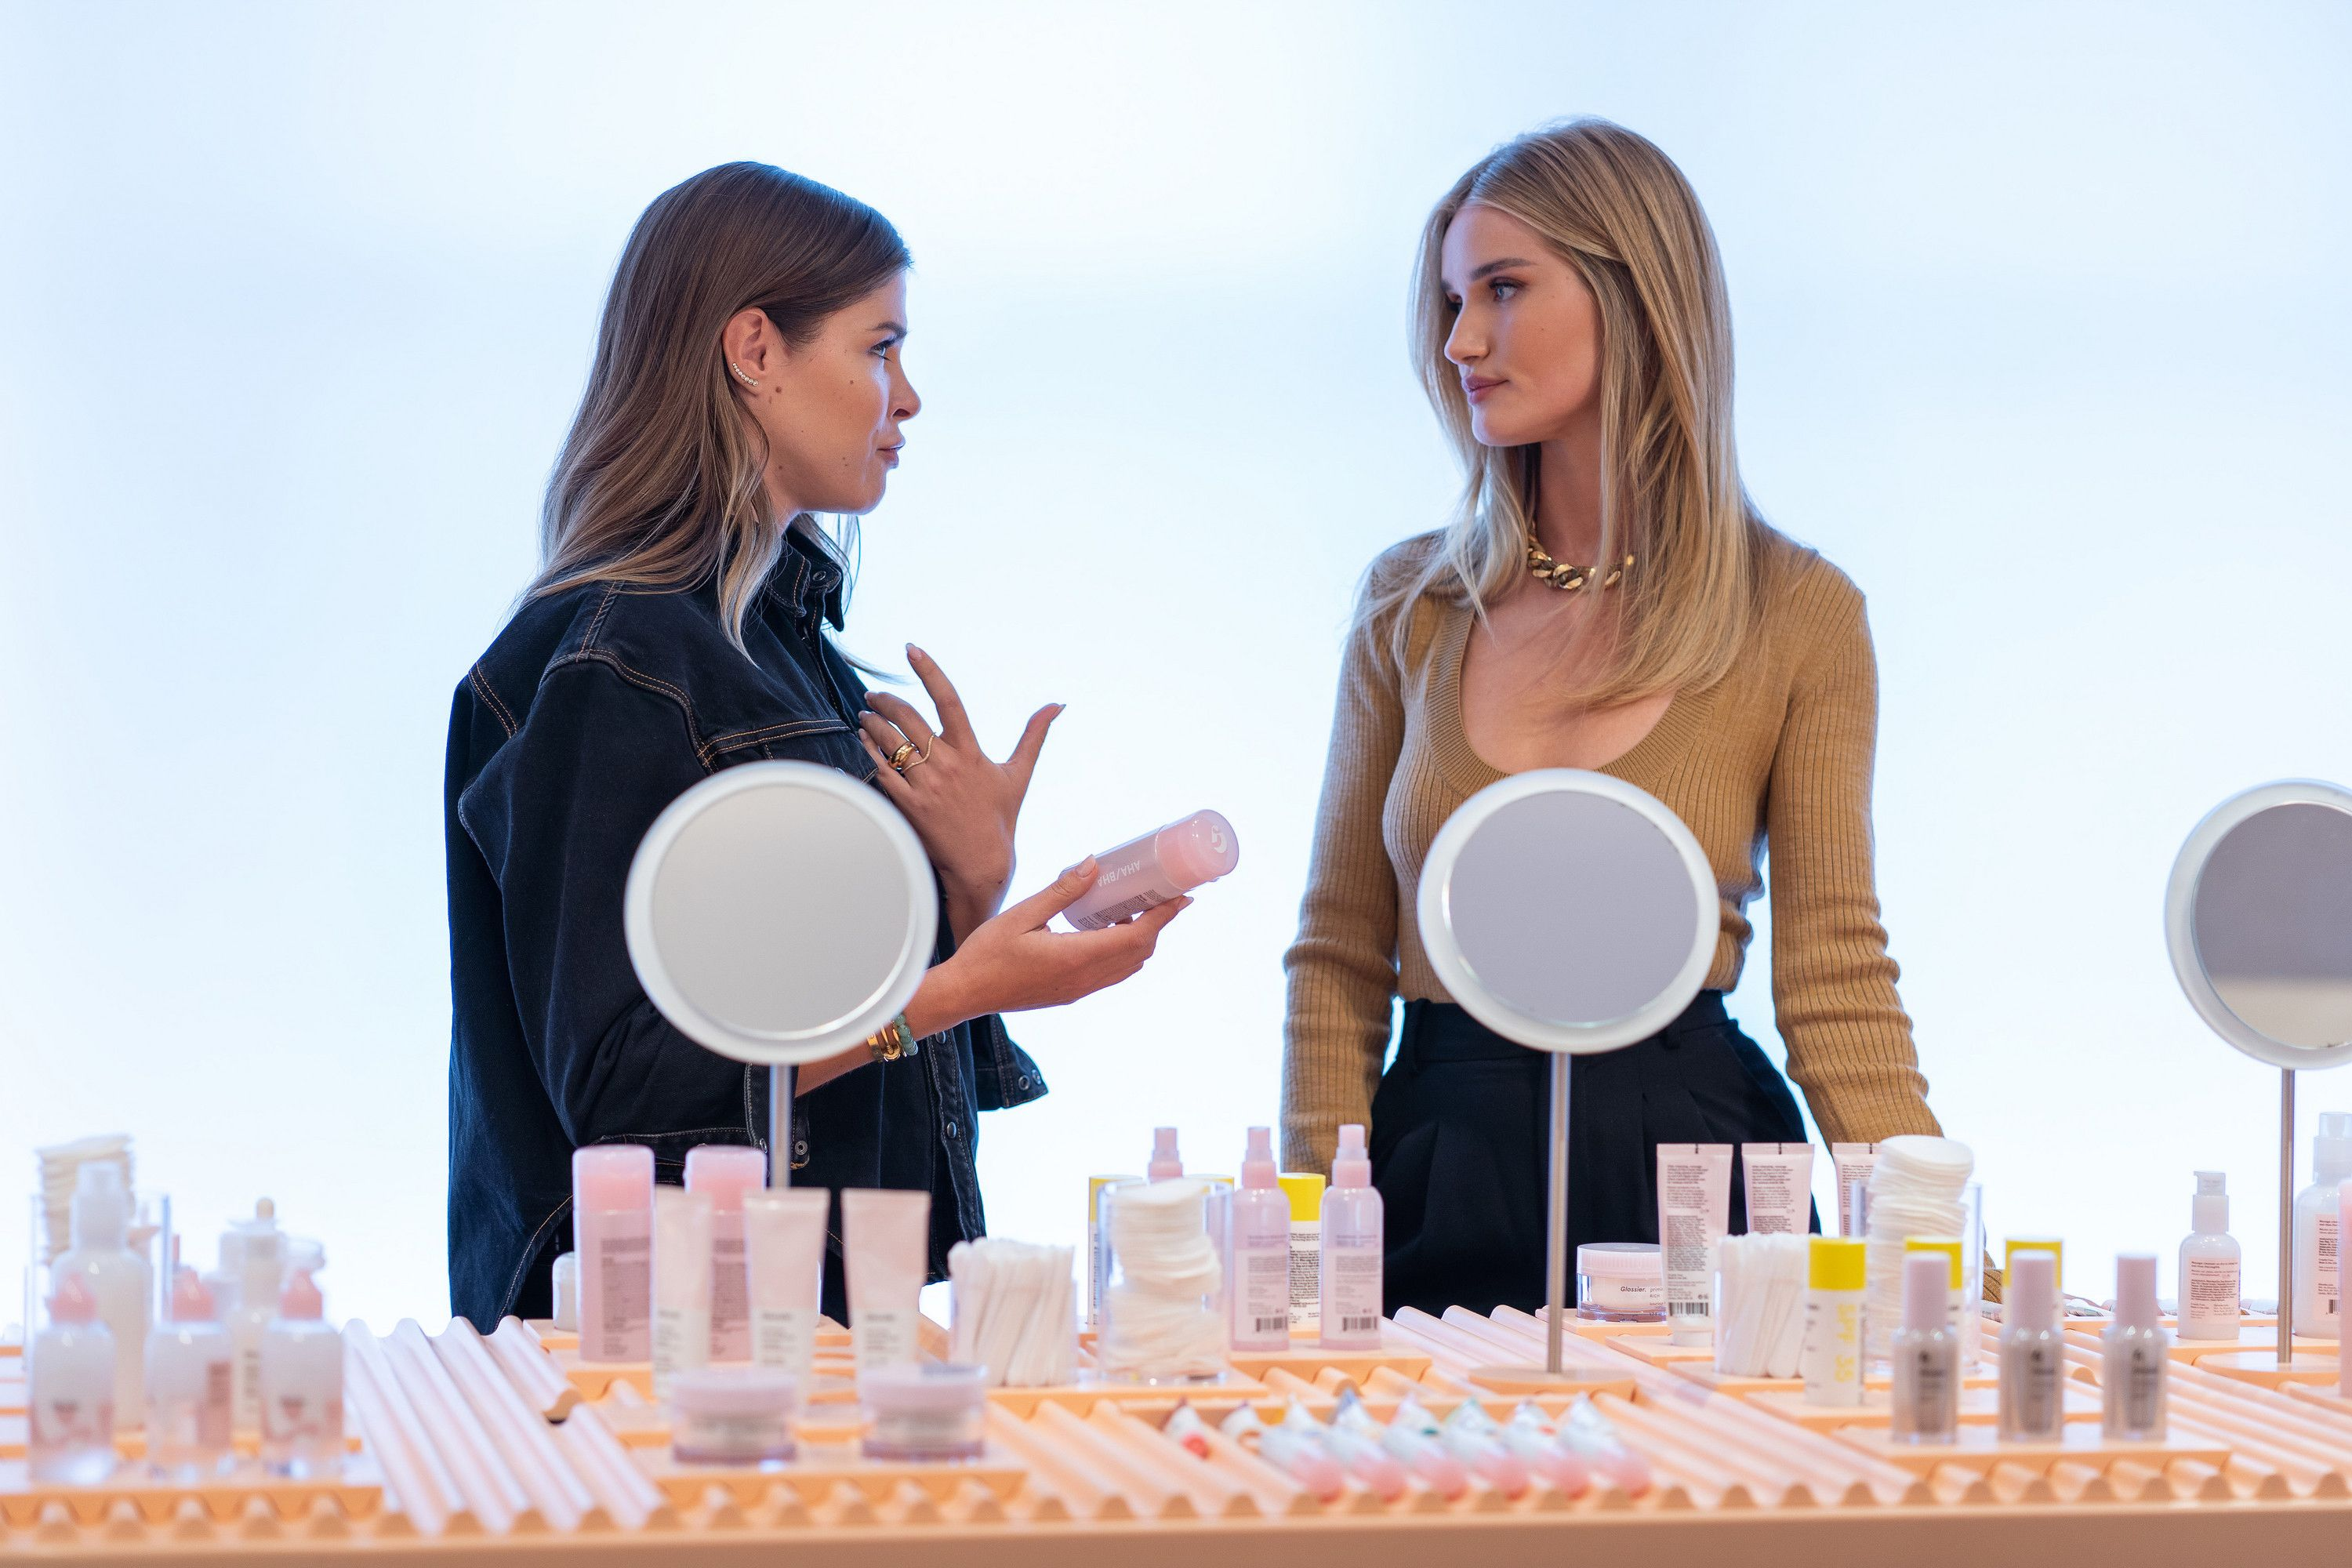 Everything You Need To Know About Rosie Huntington-Whiteley's New Beauty Series 'About Face'